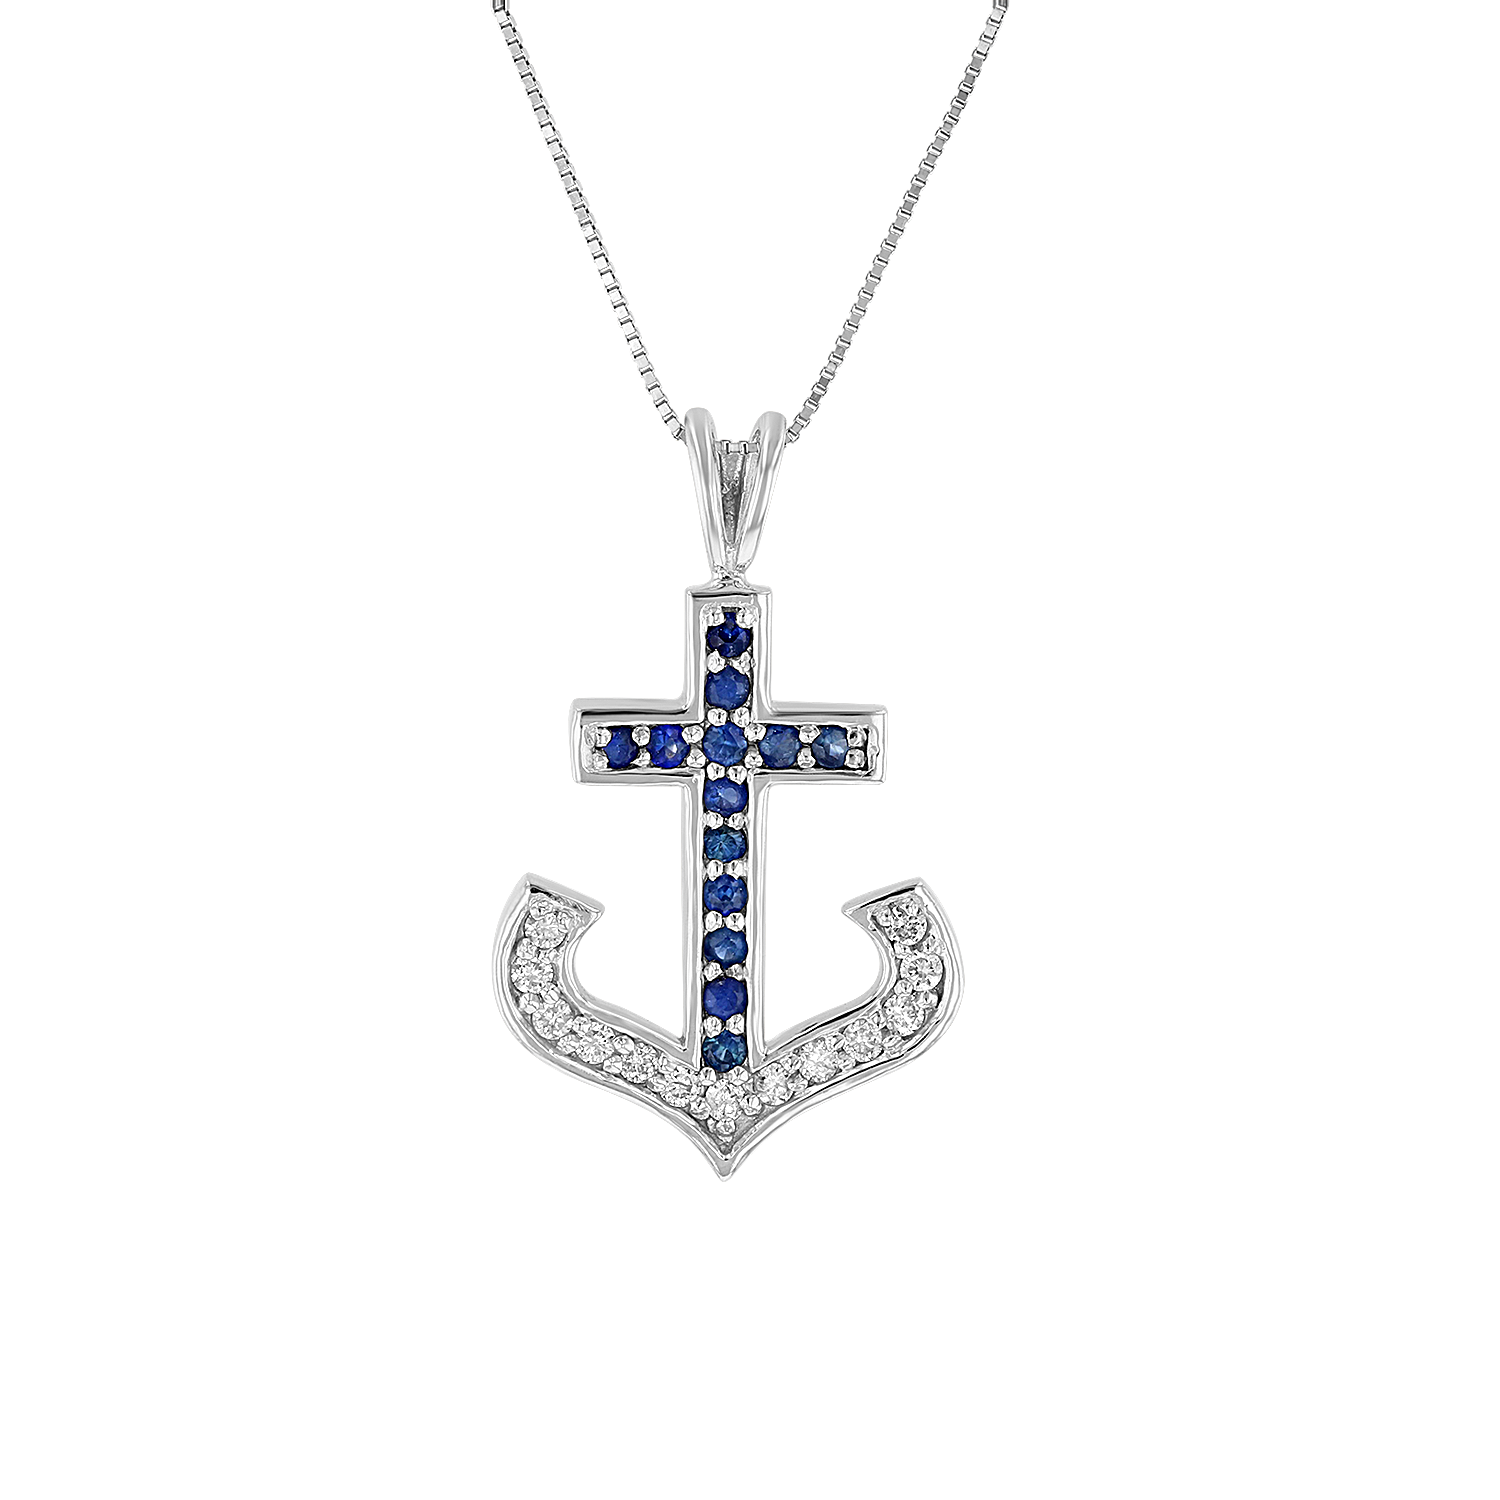 View 1/2ctw Diamond and Sapphire Anchor Pendant in 14k White Gold